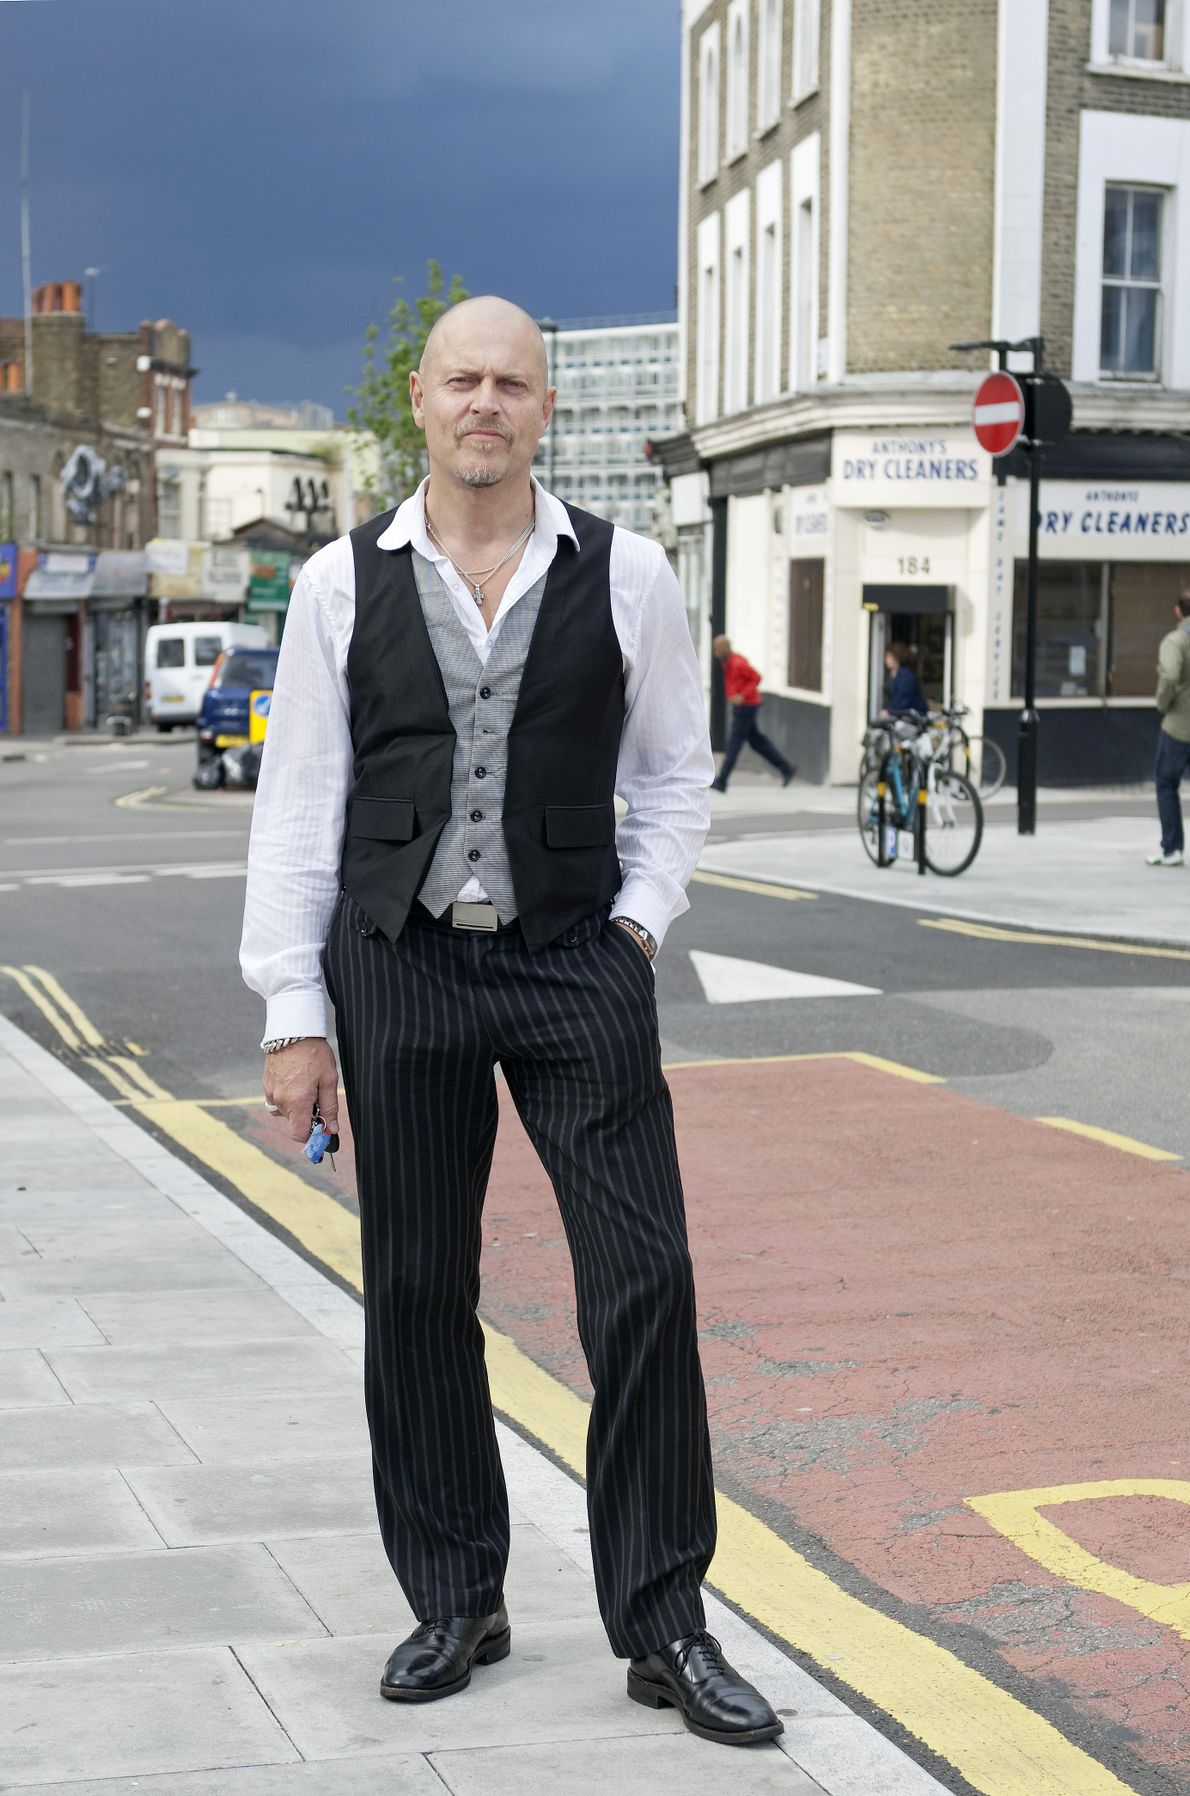 Hackney resident photographed on street